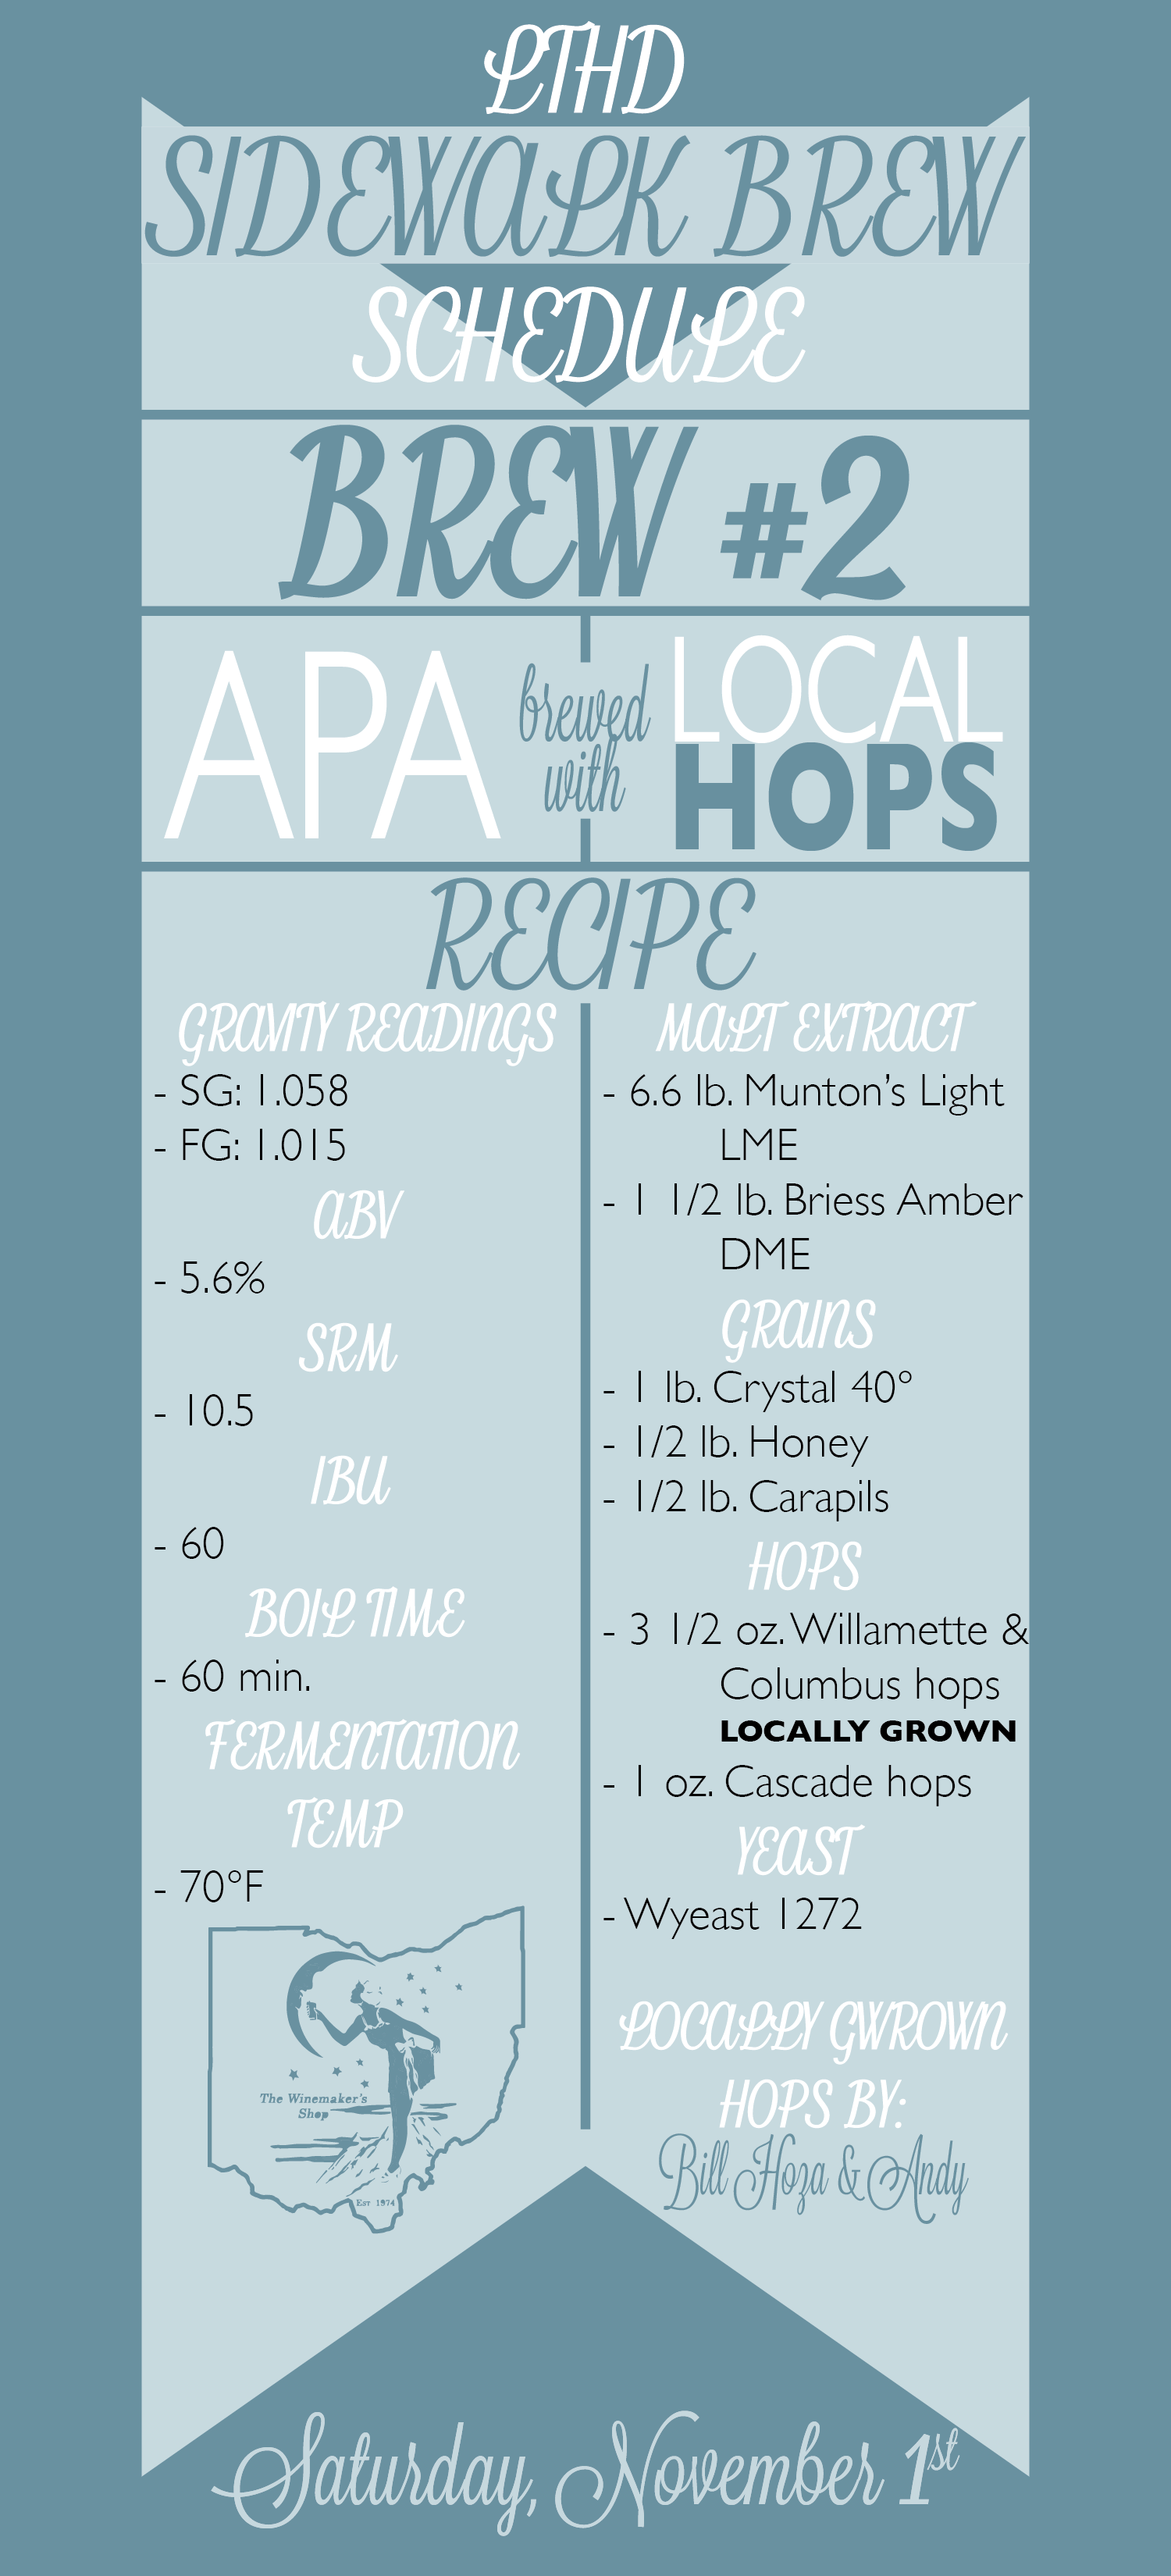 LTHDschedule-recipes-03.png